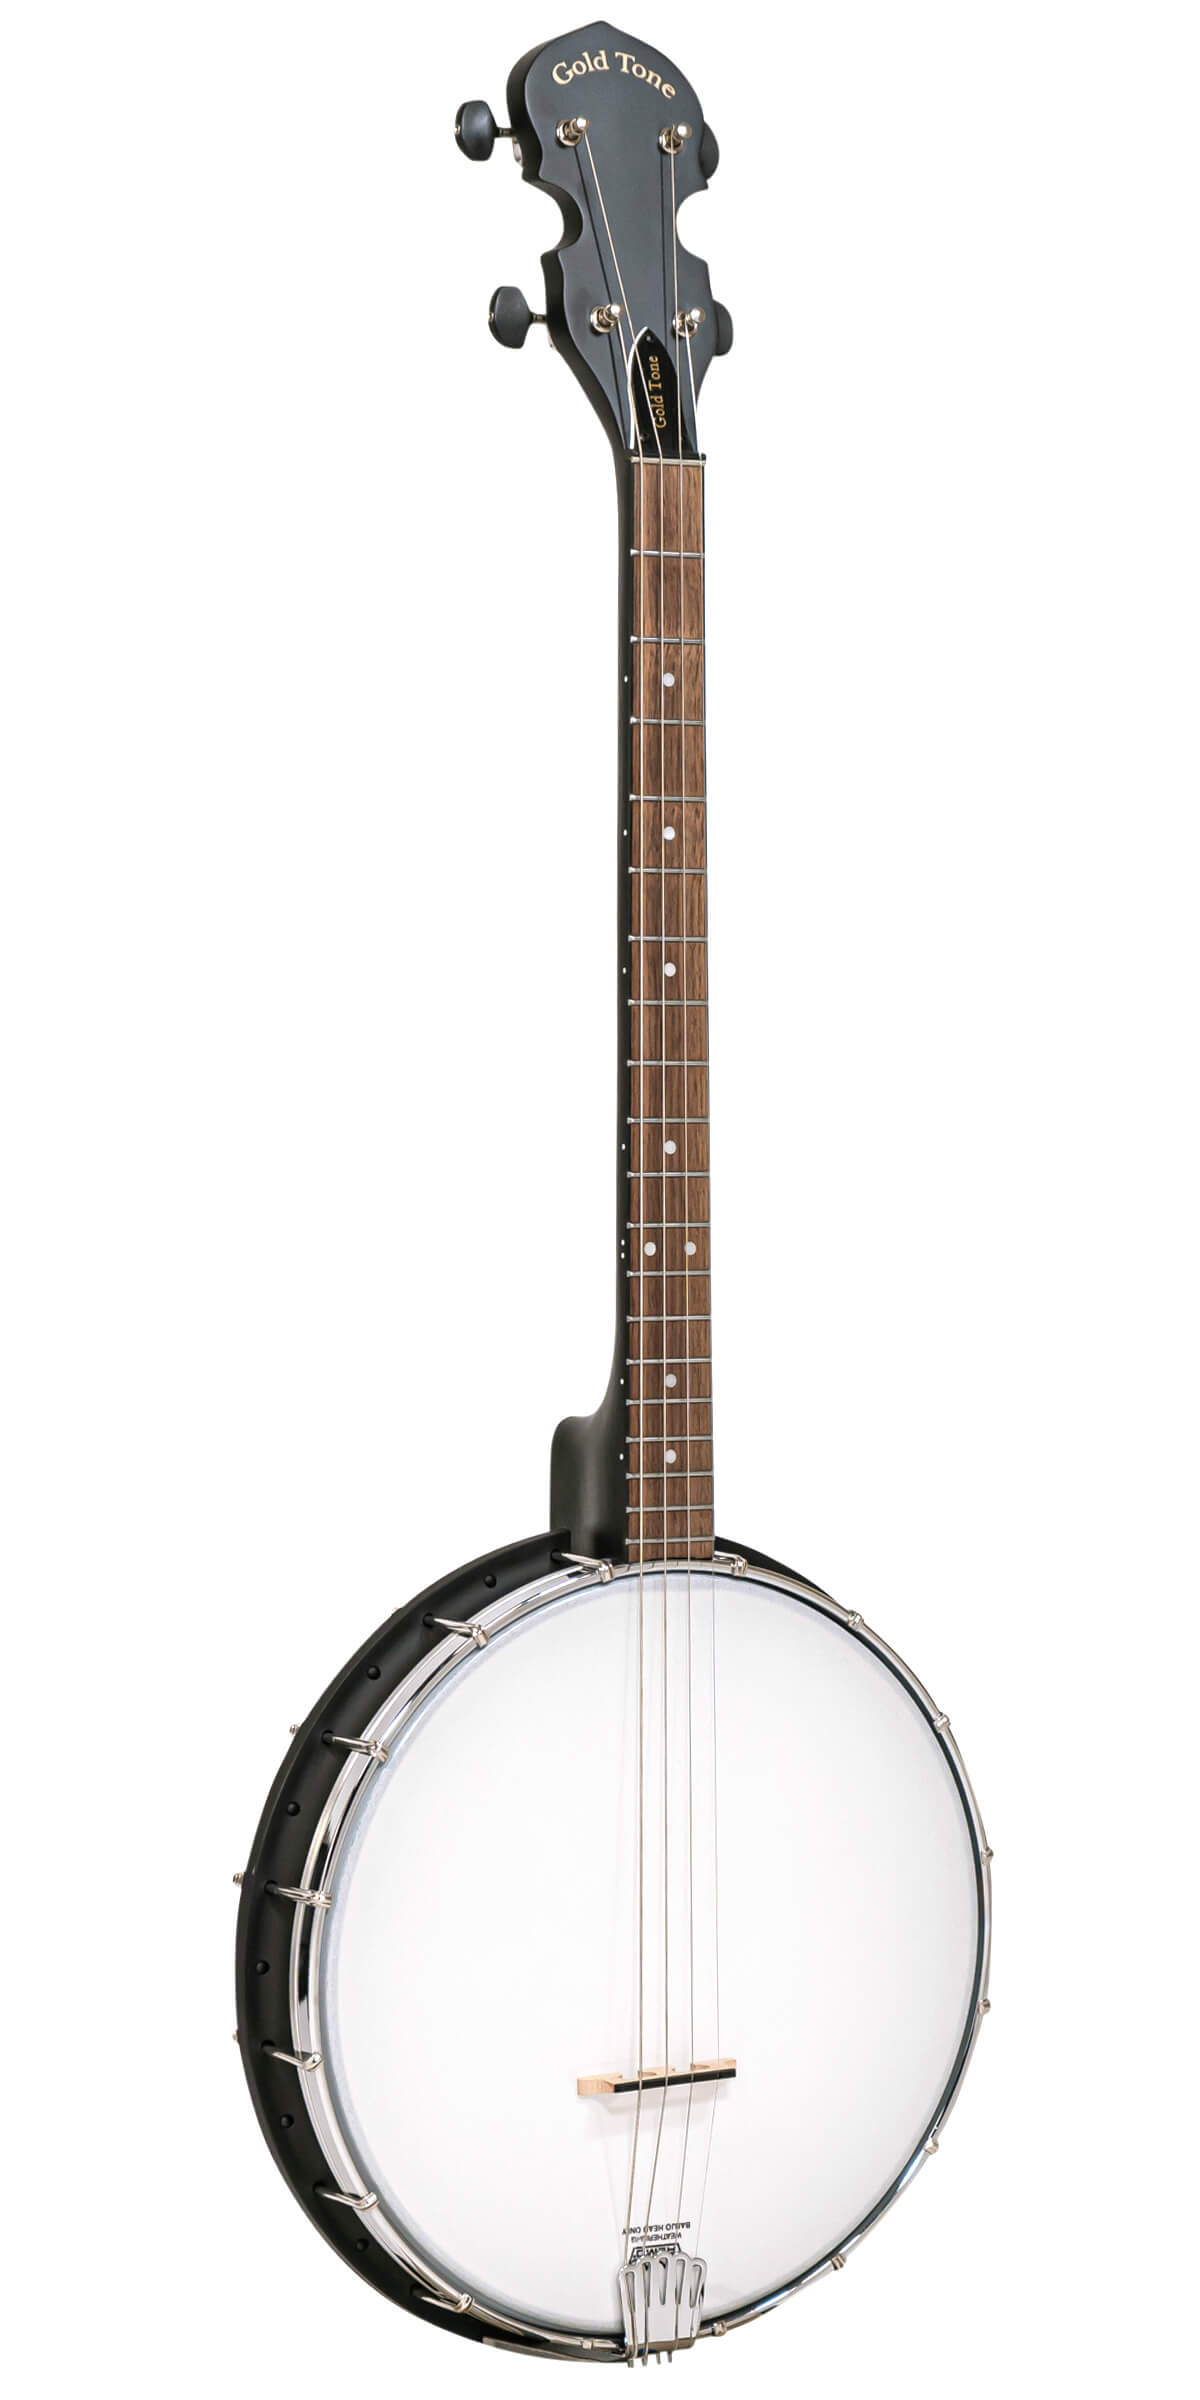 AC-4: Acoustic Composite Tenor Banjo